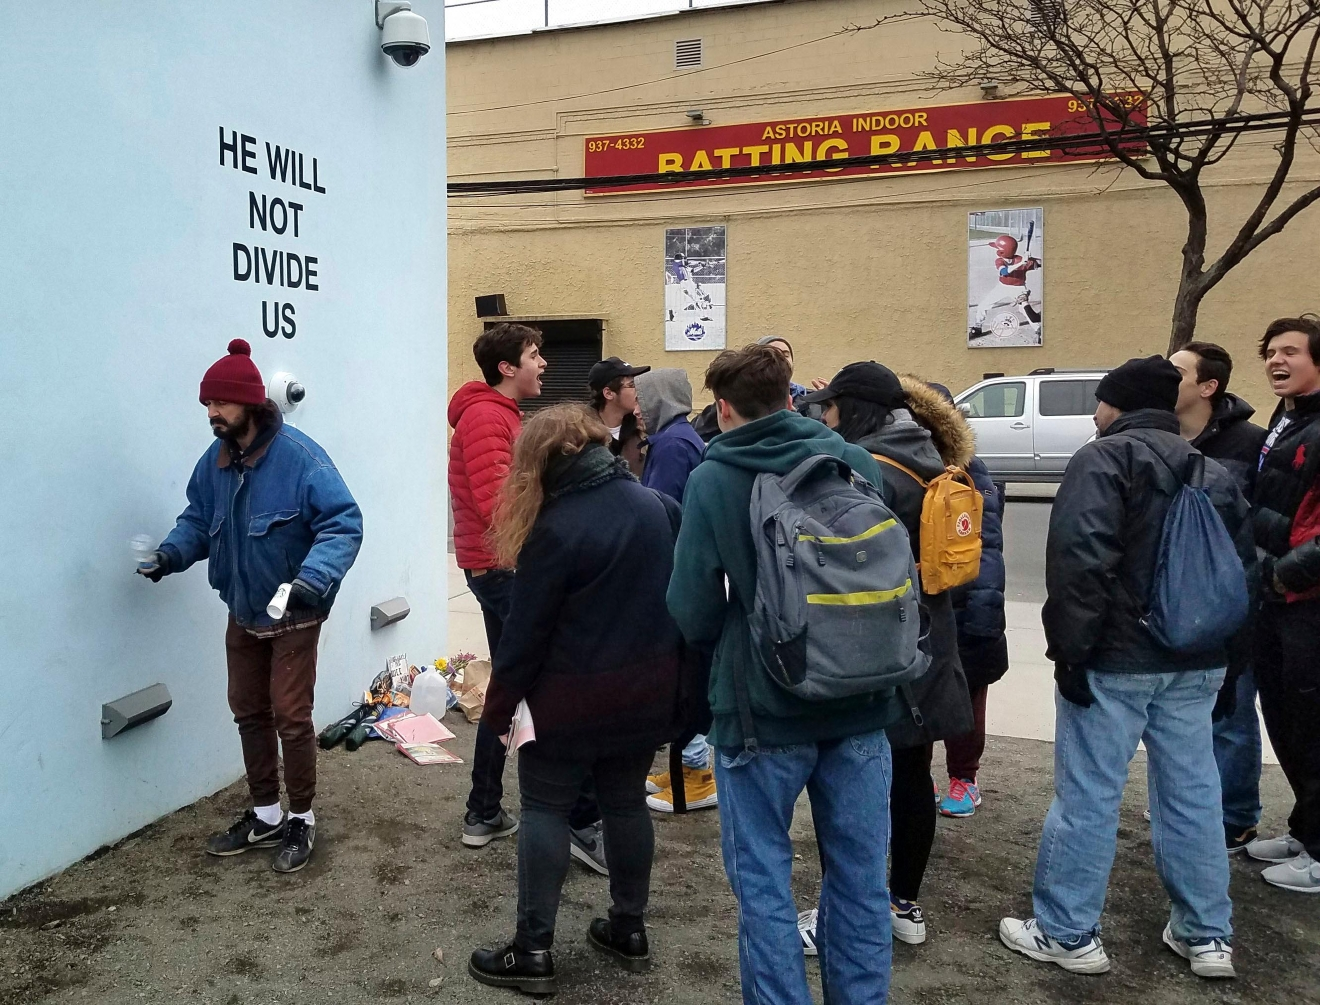 "Actor Shia LeBeouf, left, stands in front of a live-steam camera with the words ""HE WILL NOT DIVIDE US"" posted on a wall outside of the the Museum of the Moving Image as members of the public join LeBeouf in chanting the words ""He will Not Divide Us"" in the Queens borough of New York. LaBeouf has spent the first four days of the Trump presidency swaying, dancing and chanting, along with anyone who wants to join in. The project by LeBeouf and two other artists opened on Jan. 20 and is expected to go for 4 years, or for ""the duration of the presidency."" (AP Photo/Deepti Hajela)"